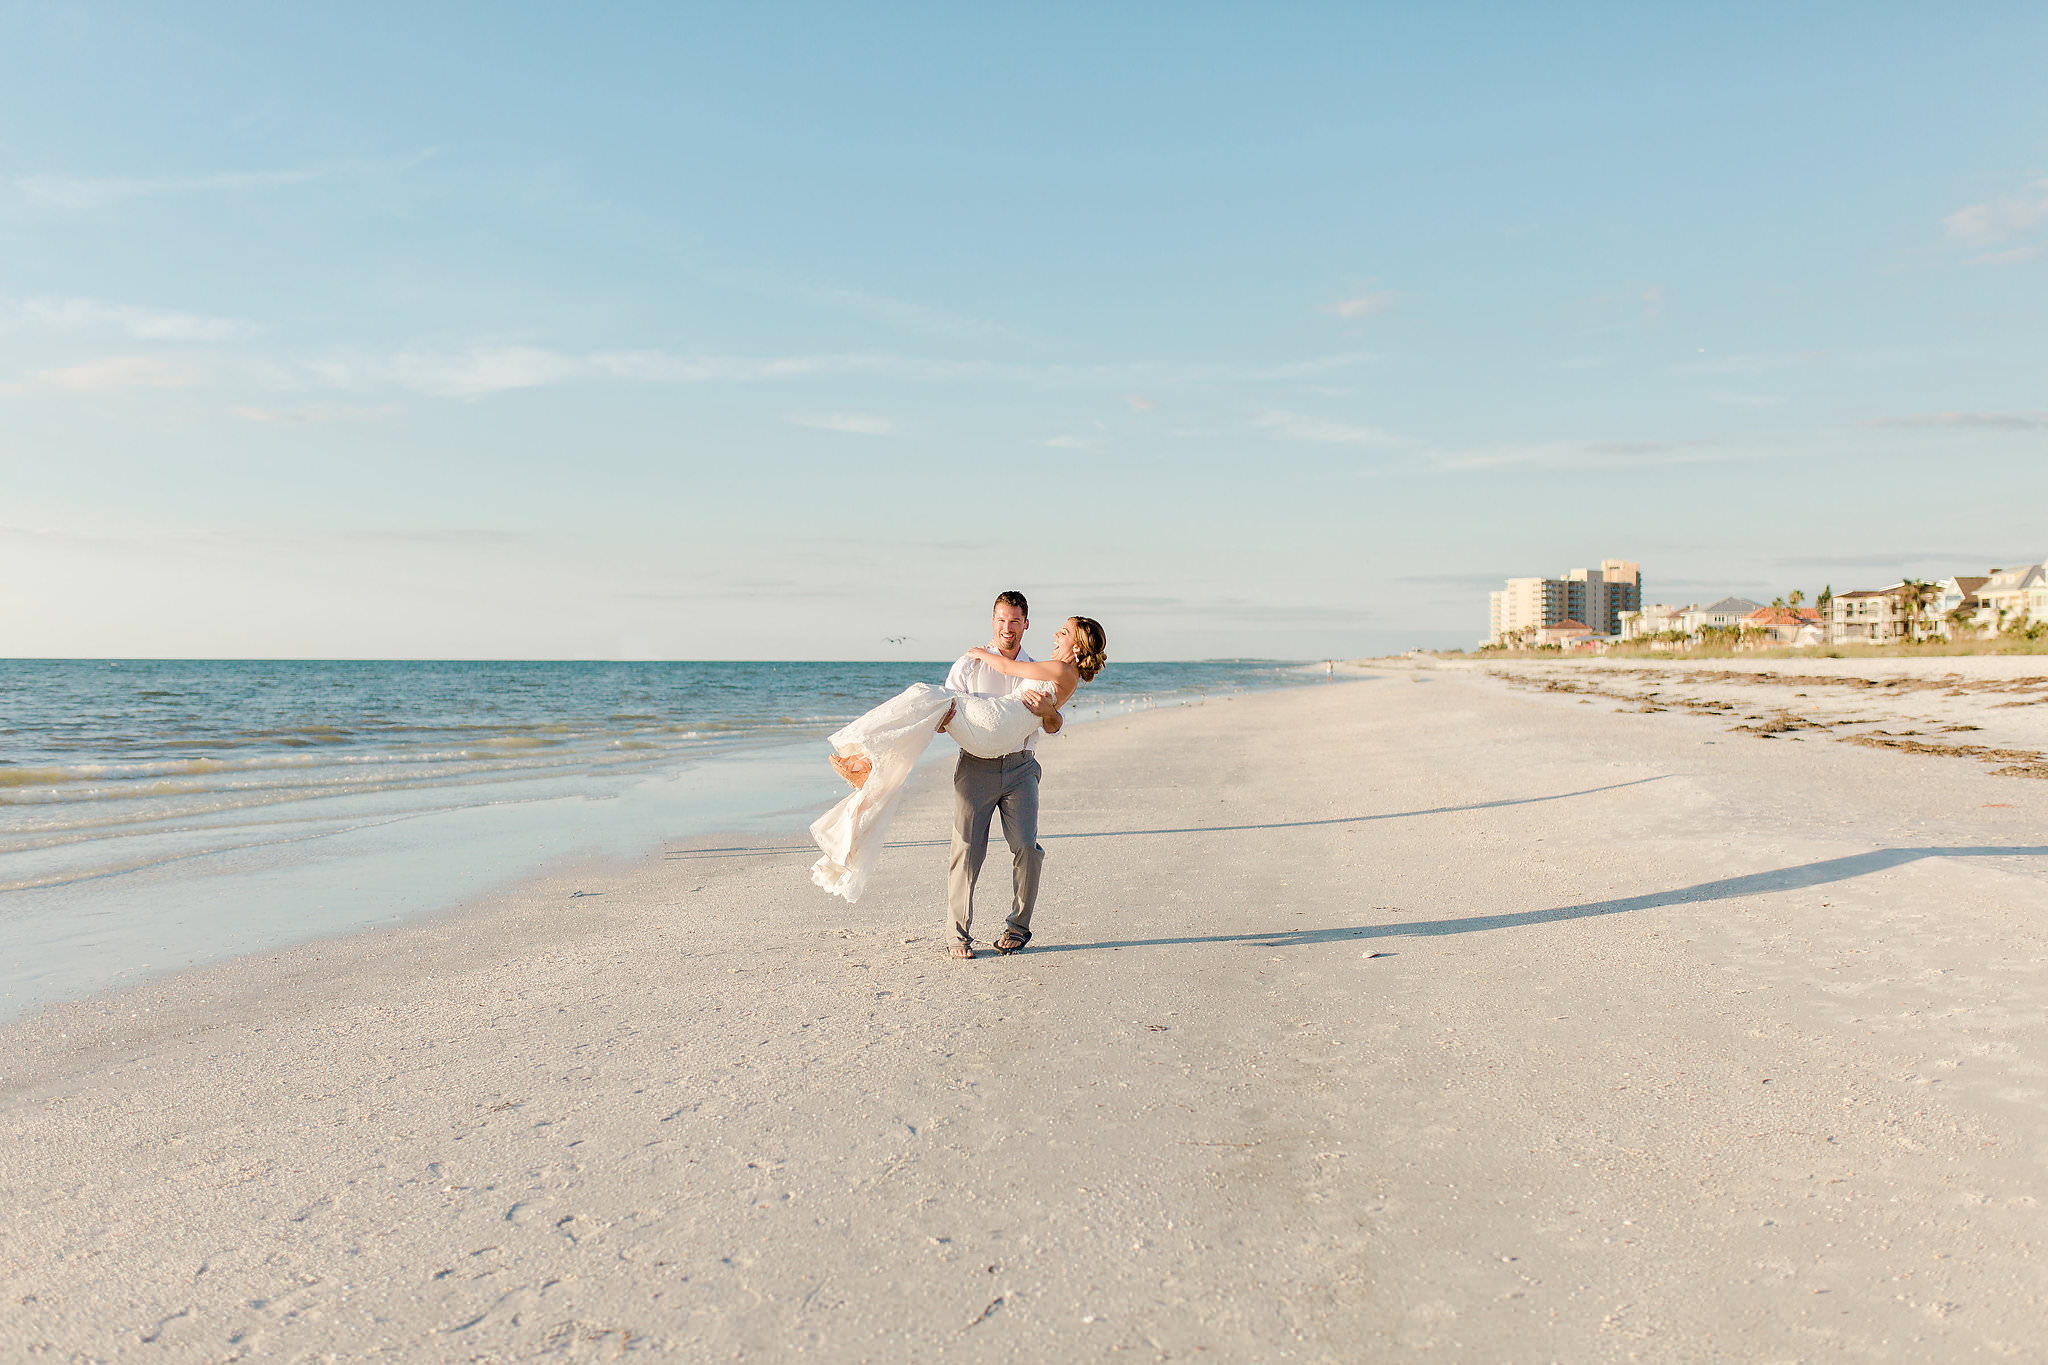 Erin-Jared-clearwater-beach-wedding-portraits-I58A5938.jpg